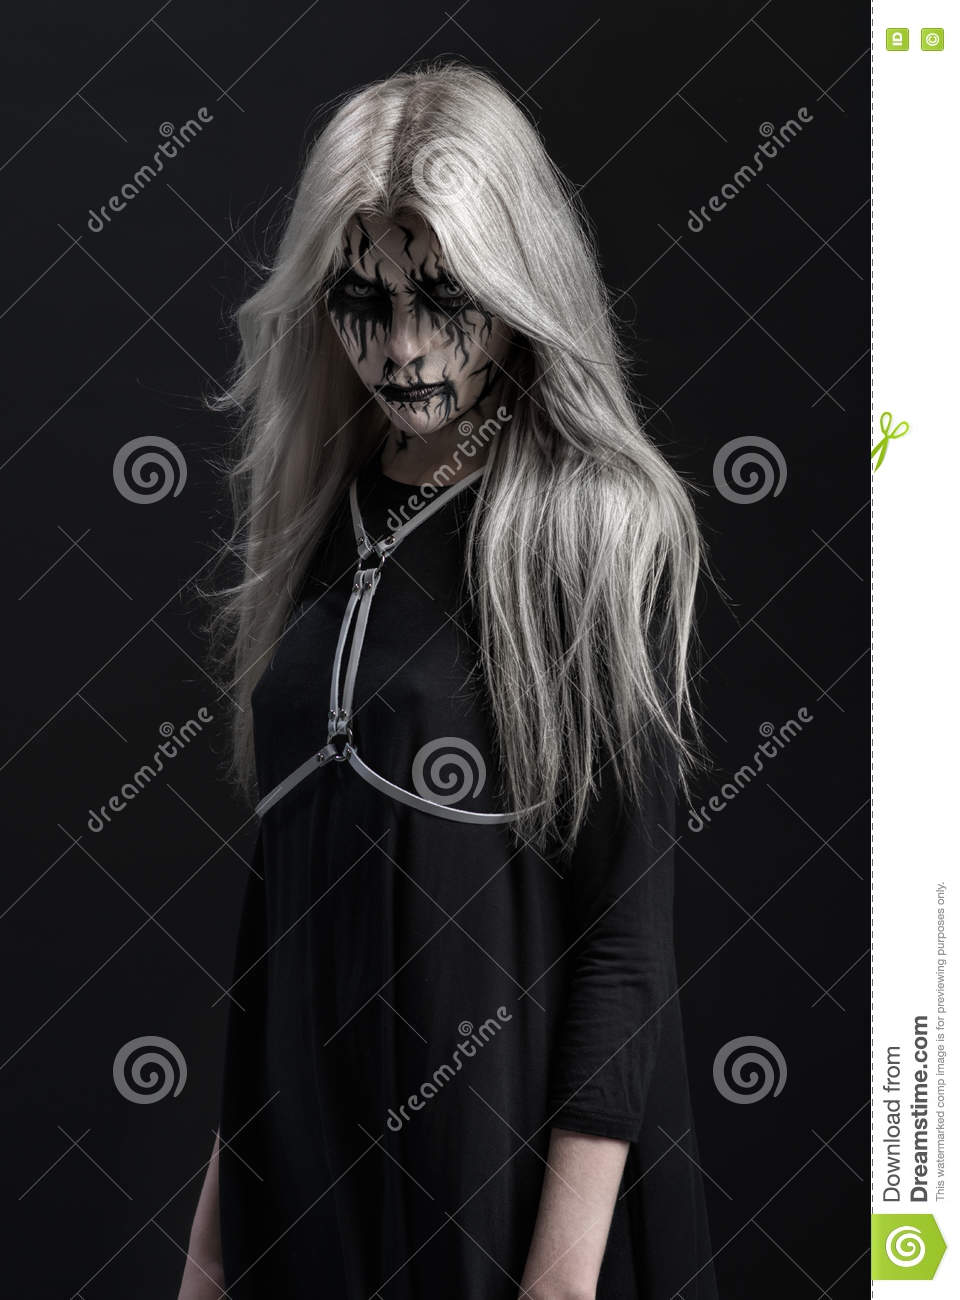 Girl with scary makeup on face